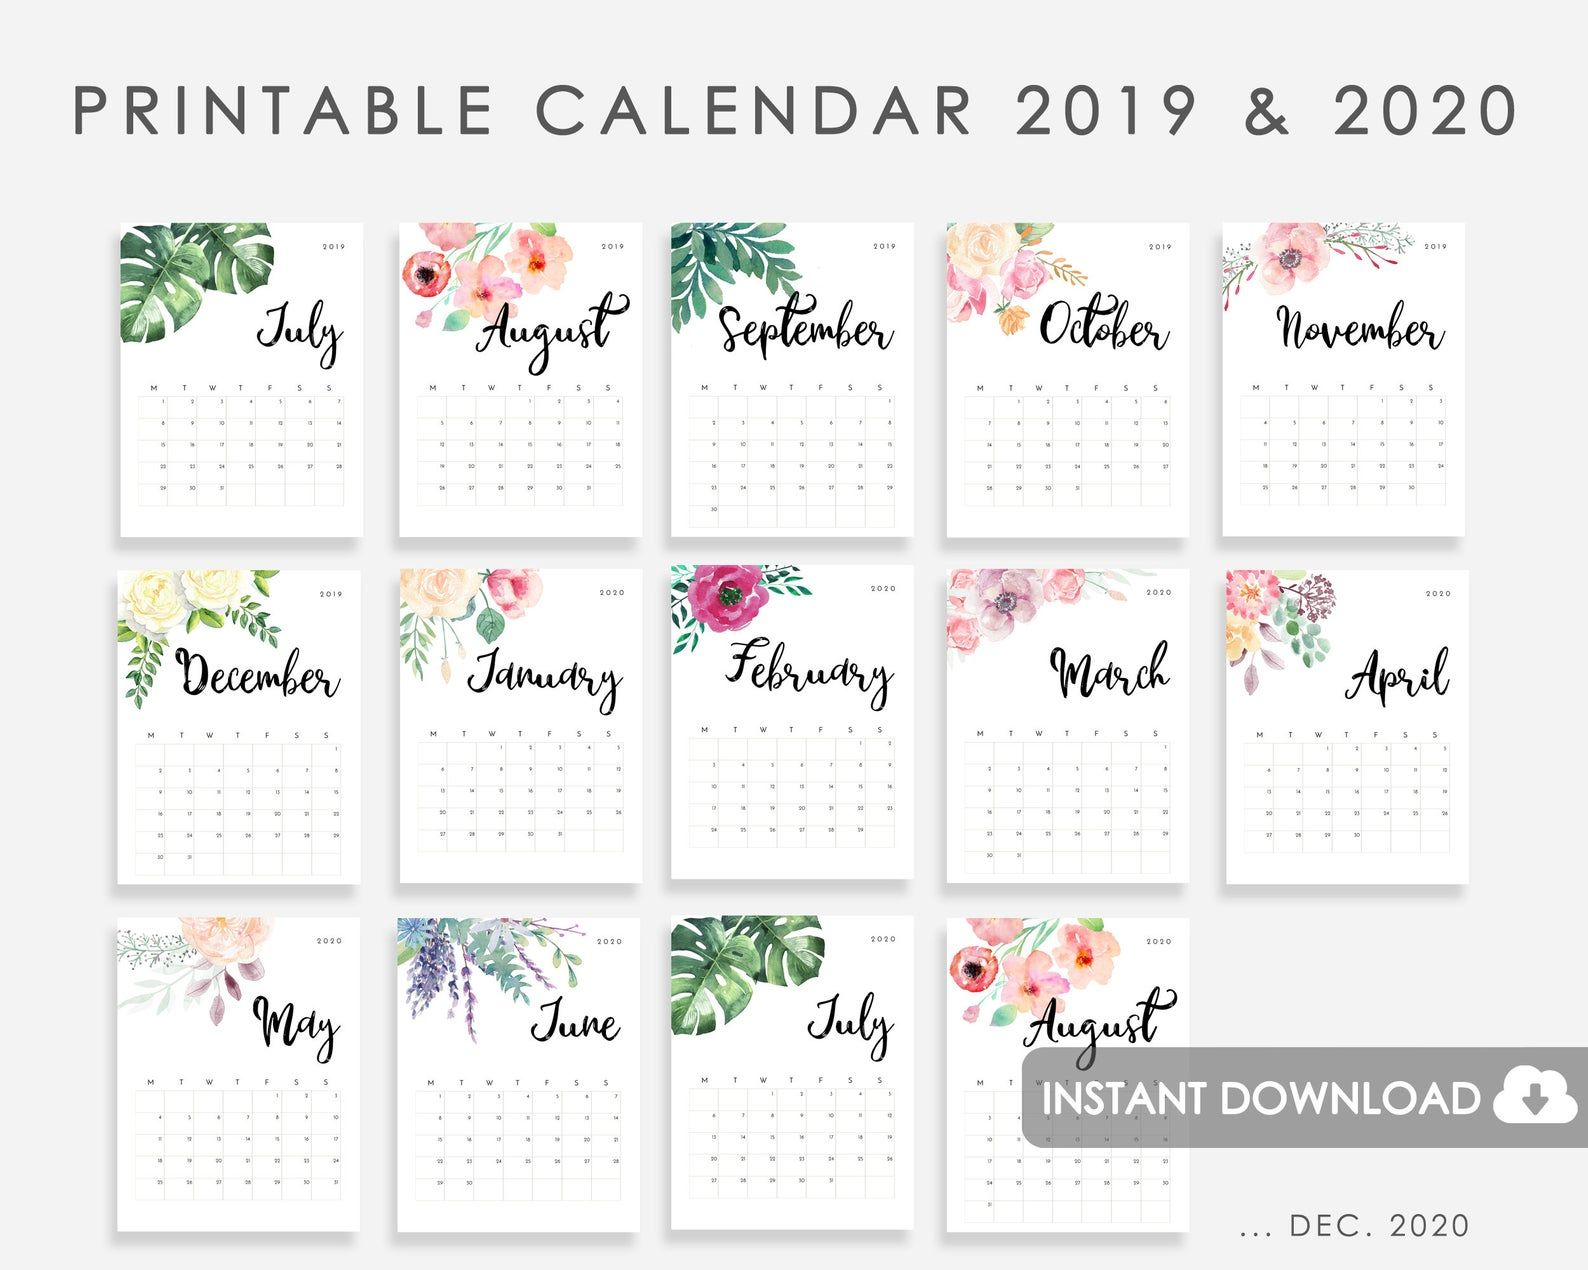 Calendar 2019 2020 Printable Calendar Watercolor Flowers 2019